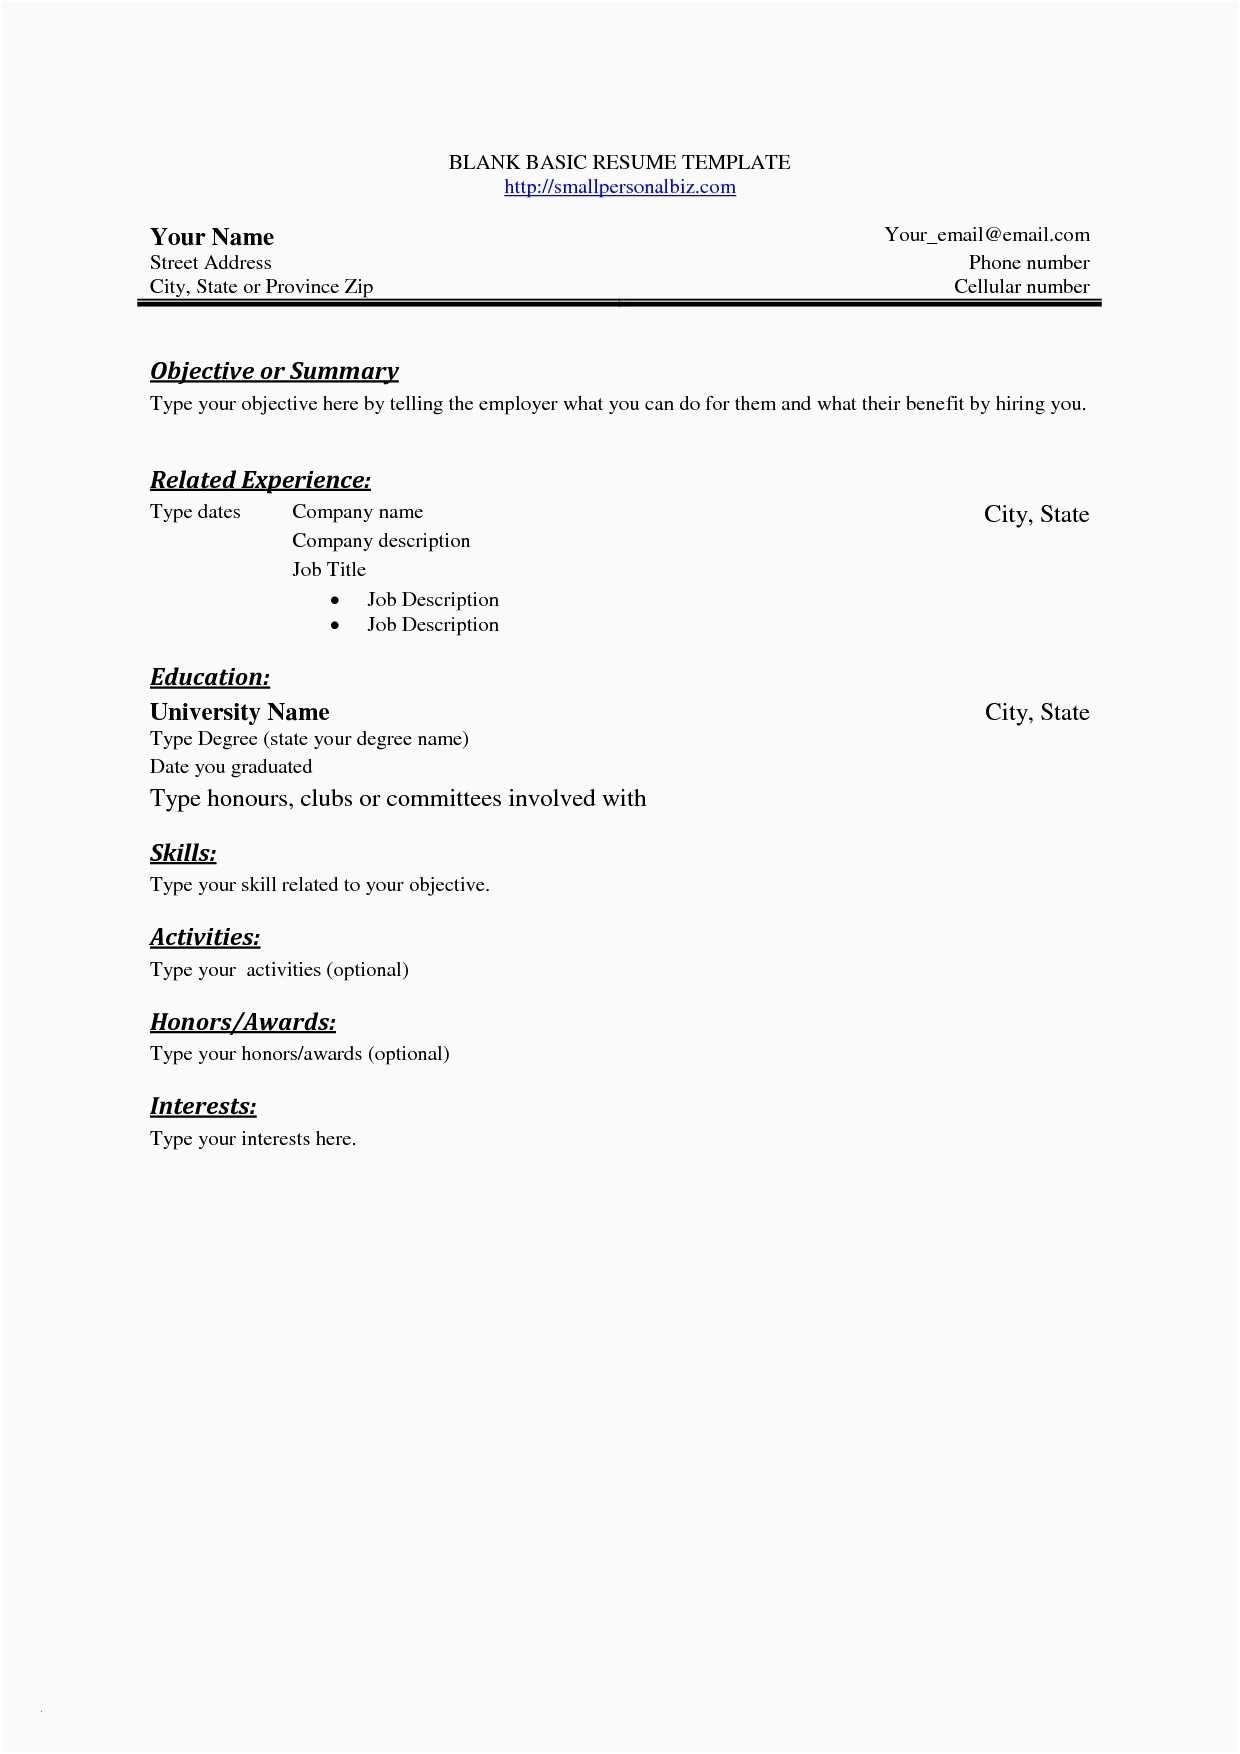 Fill In the Blank Resume Worksheet and Blank Simple Resume Template Sfonthebridge